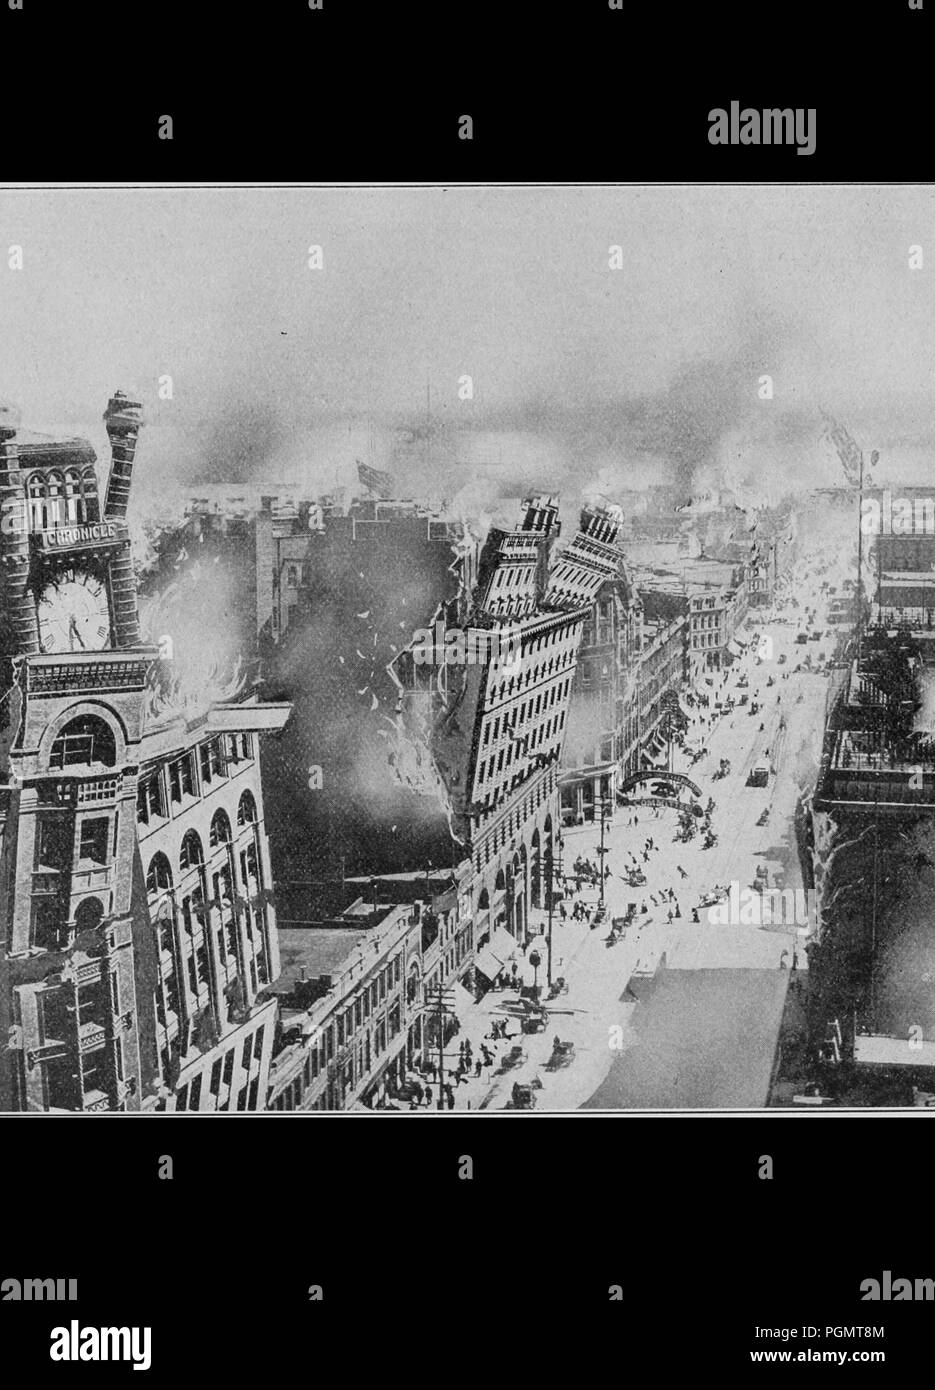 Black and white photograph showing a city street with people, cars, and horse-drawn wagons on the road below, while multi-story buildings tear apart as flames leap from their roofs following a series of aftershocks during SanFrancisco's 1906 earthquake, 1906. Courtesy Internet Archive. () - Stock Image